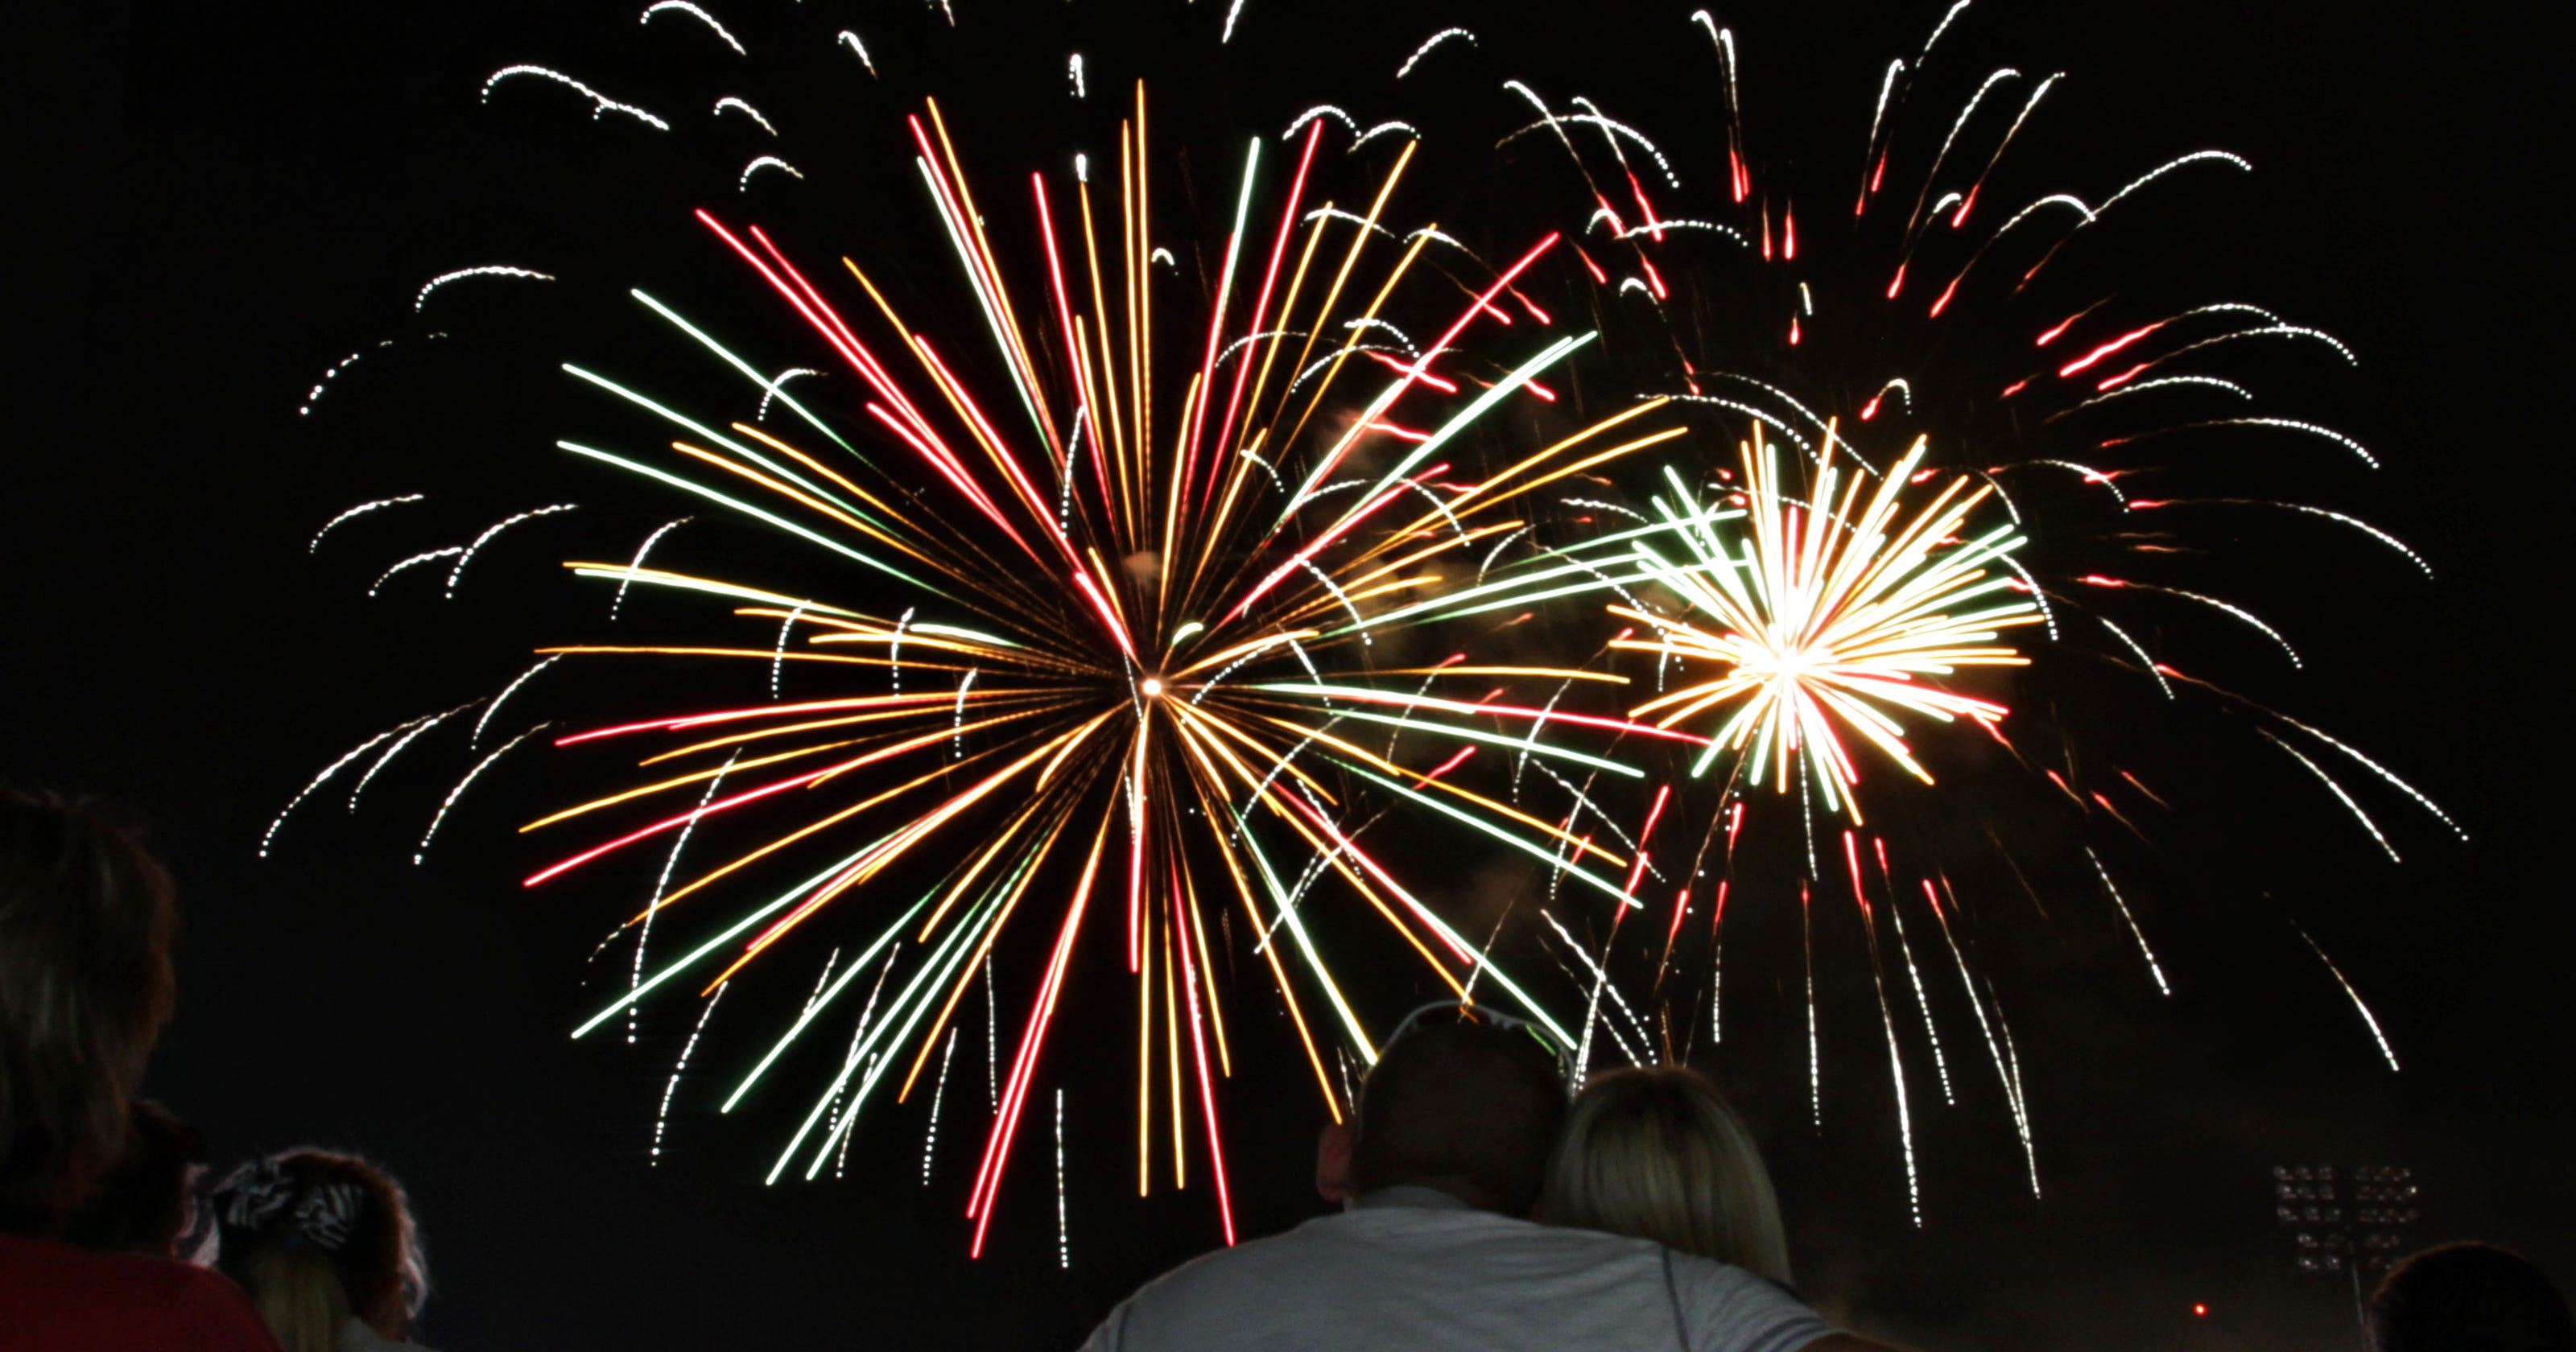 Where to watch fireworks in the Sioux Falls area this 4th of